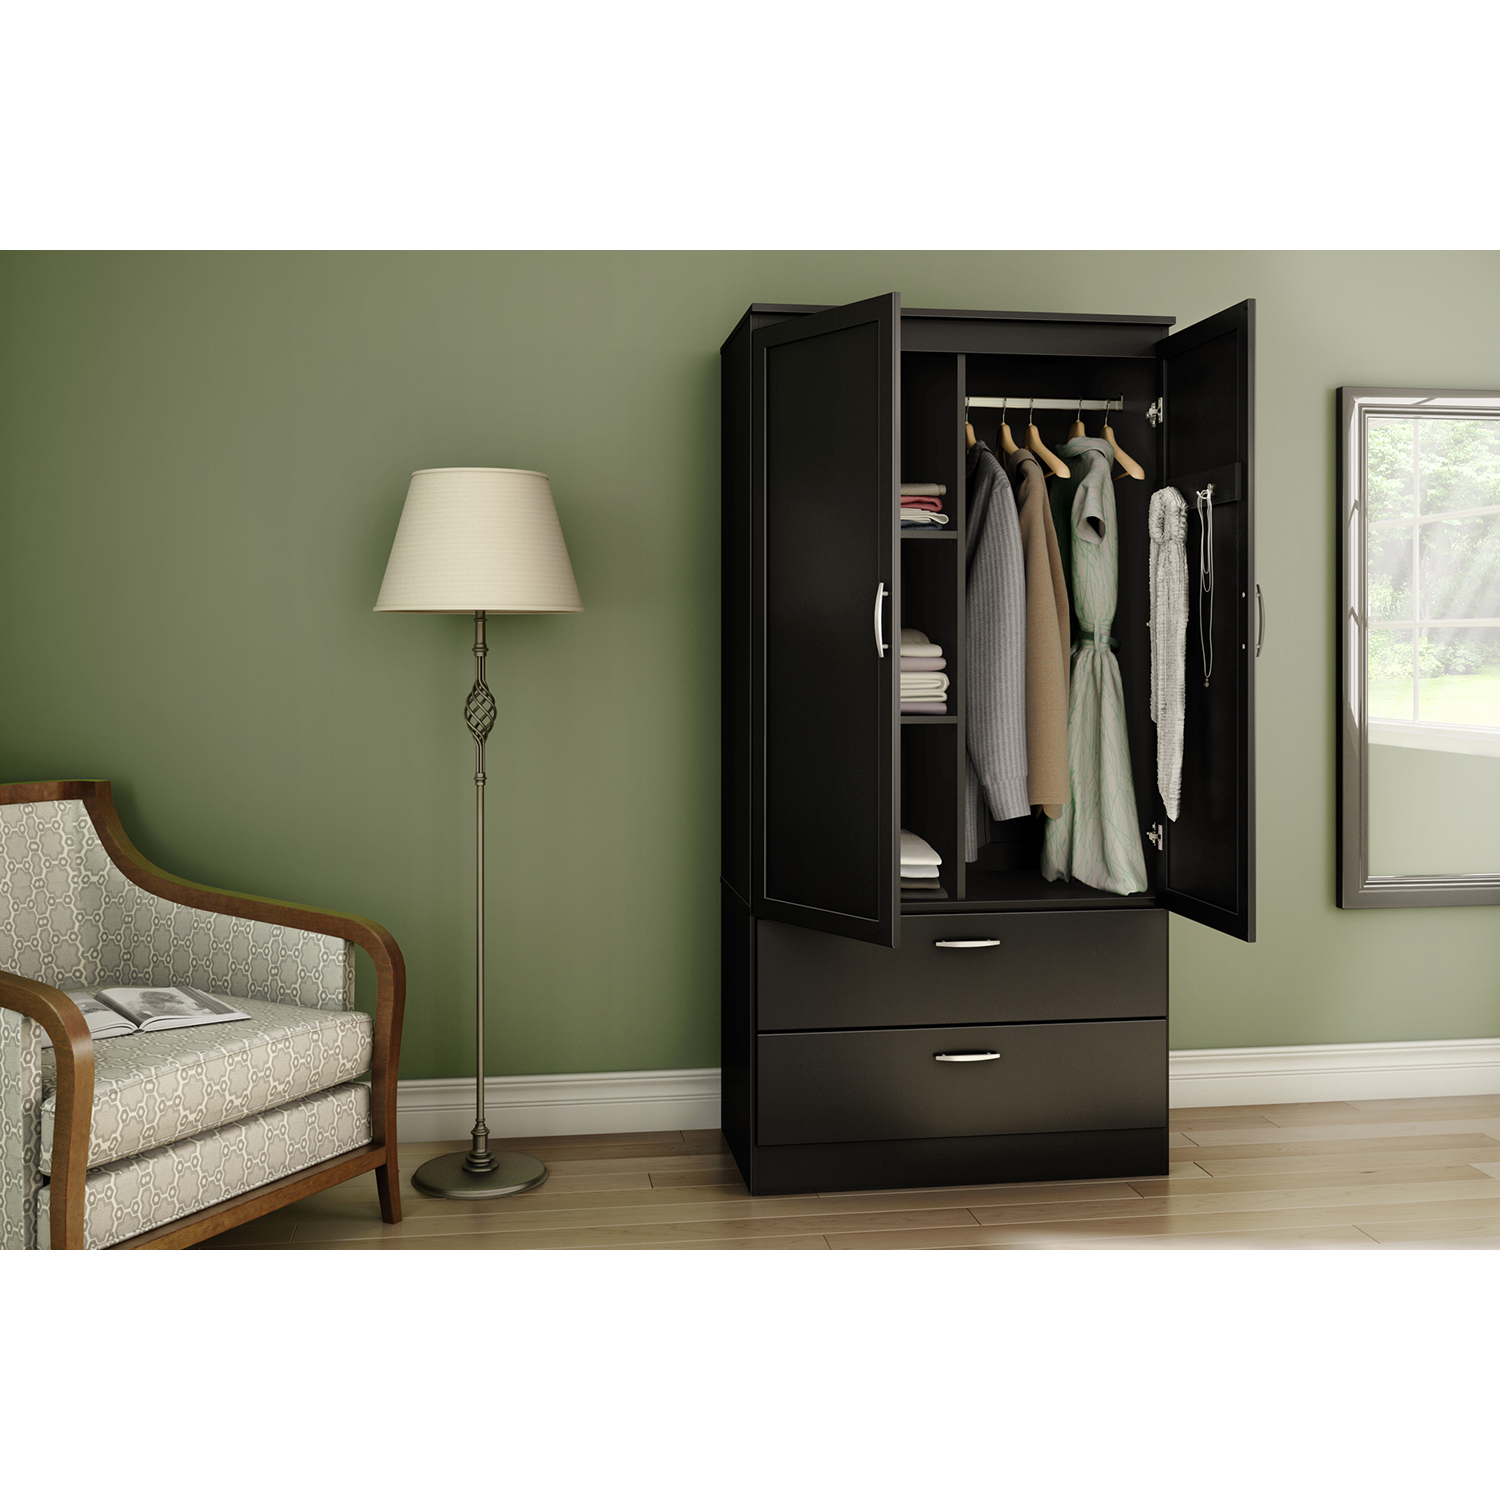 Acapella Wardrobe Armoire - Pure Black - SS-5370038